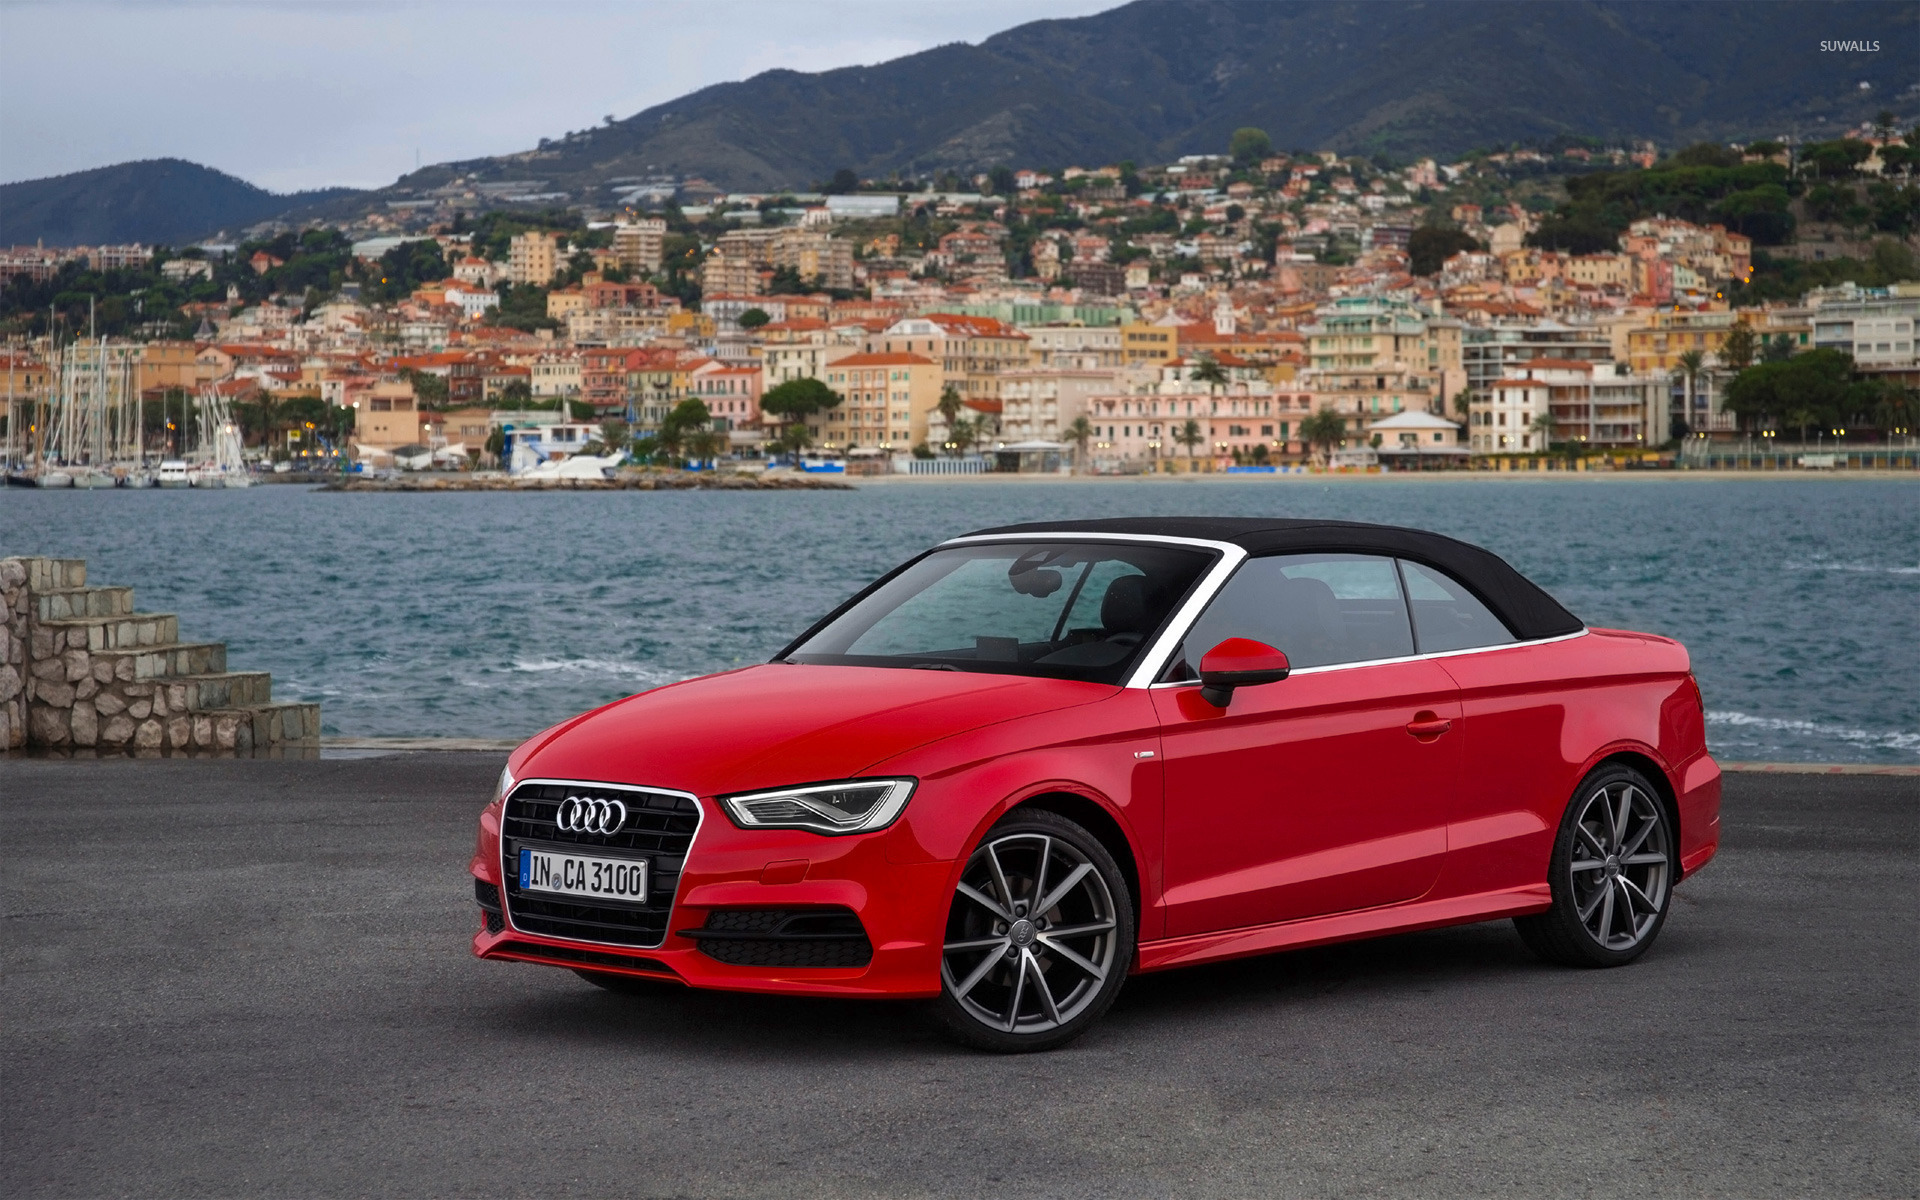 2014 audi a3 cabriolet wallpaper car wallpapers 25658. Black Bedroom Furniture Sets. Home Design Ideas